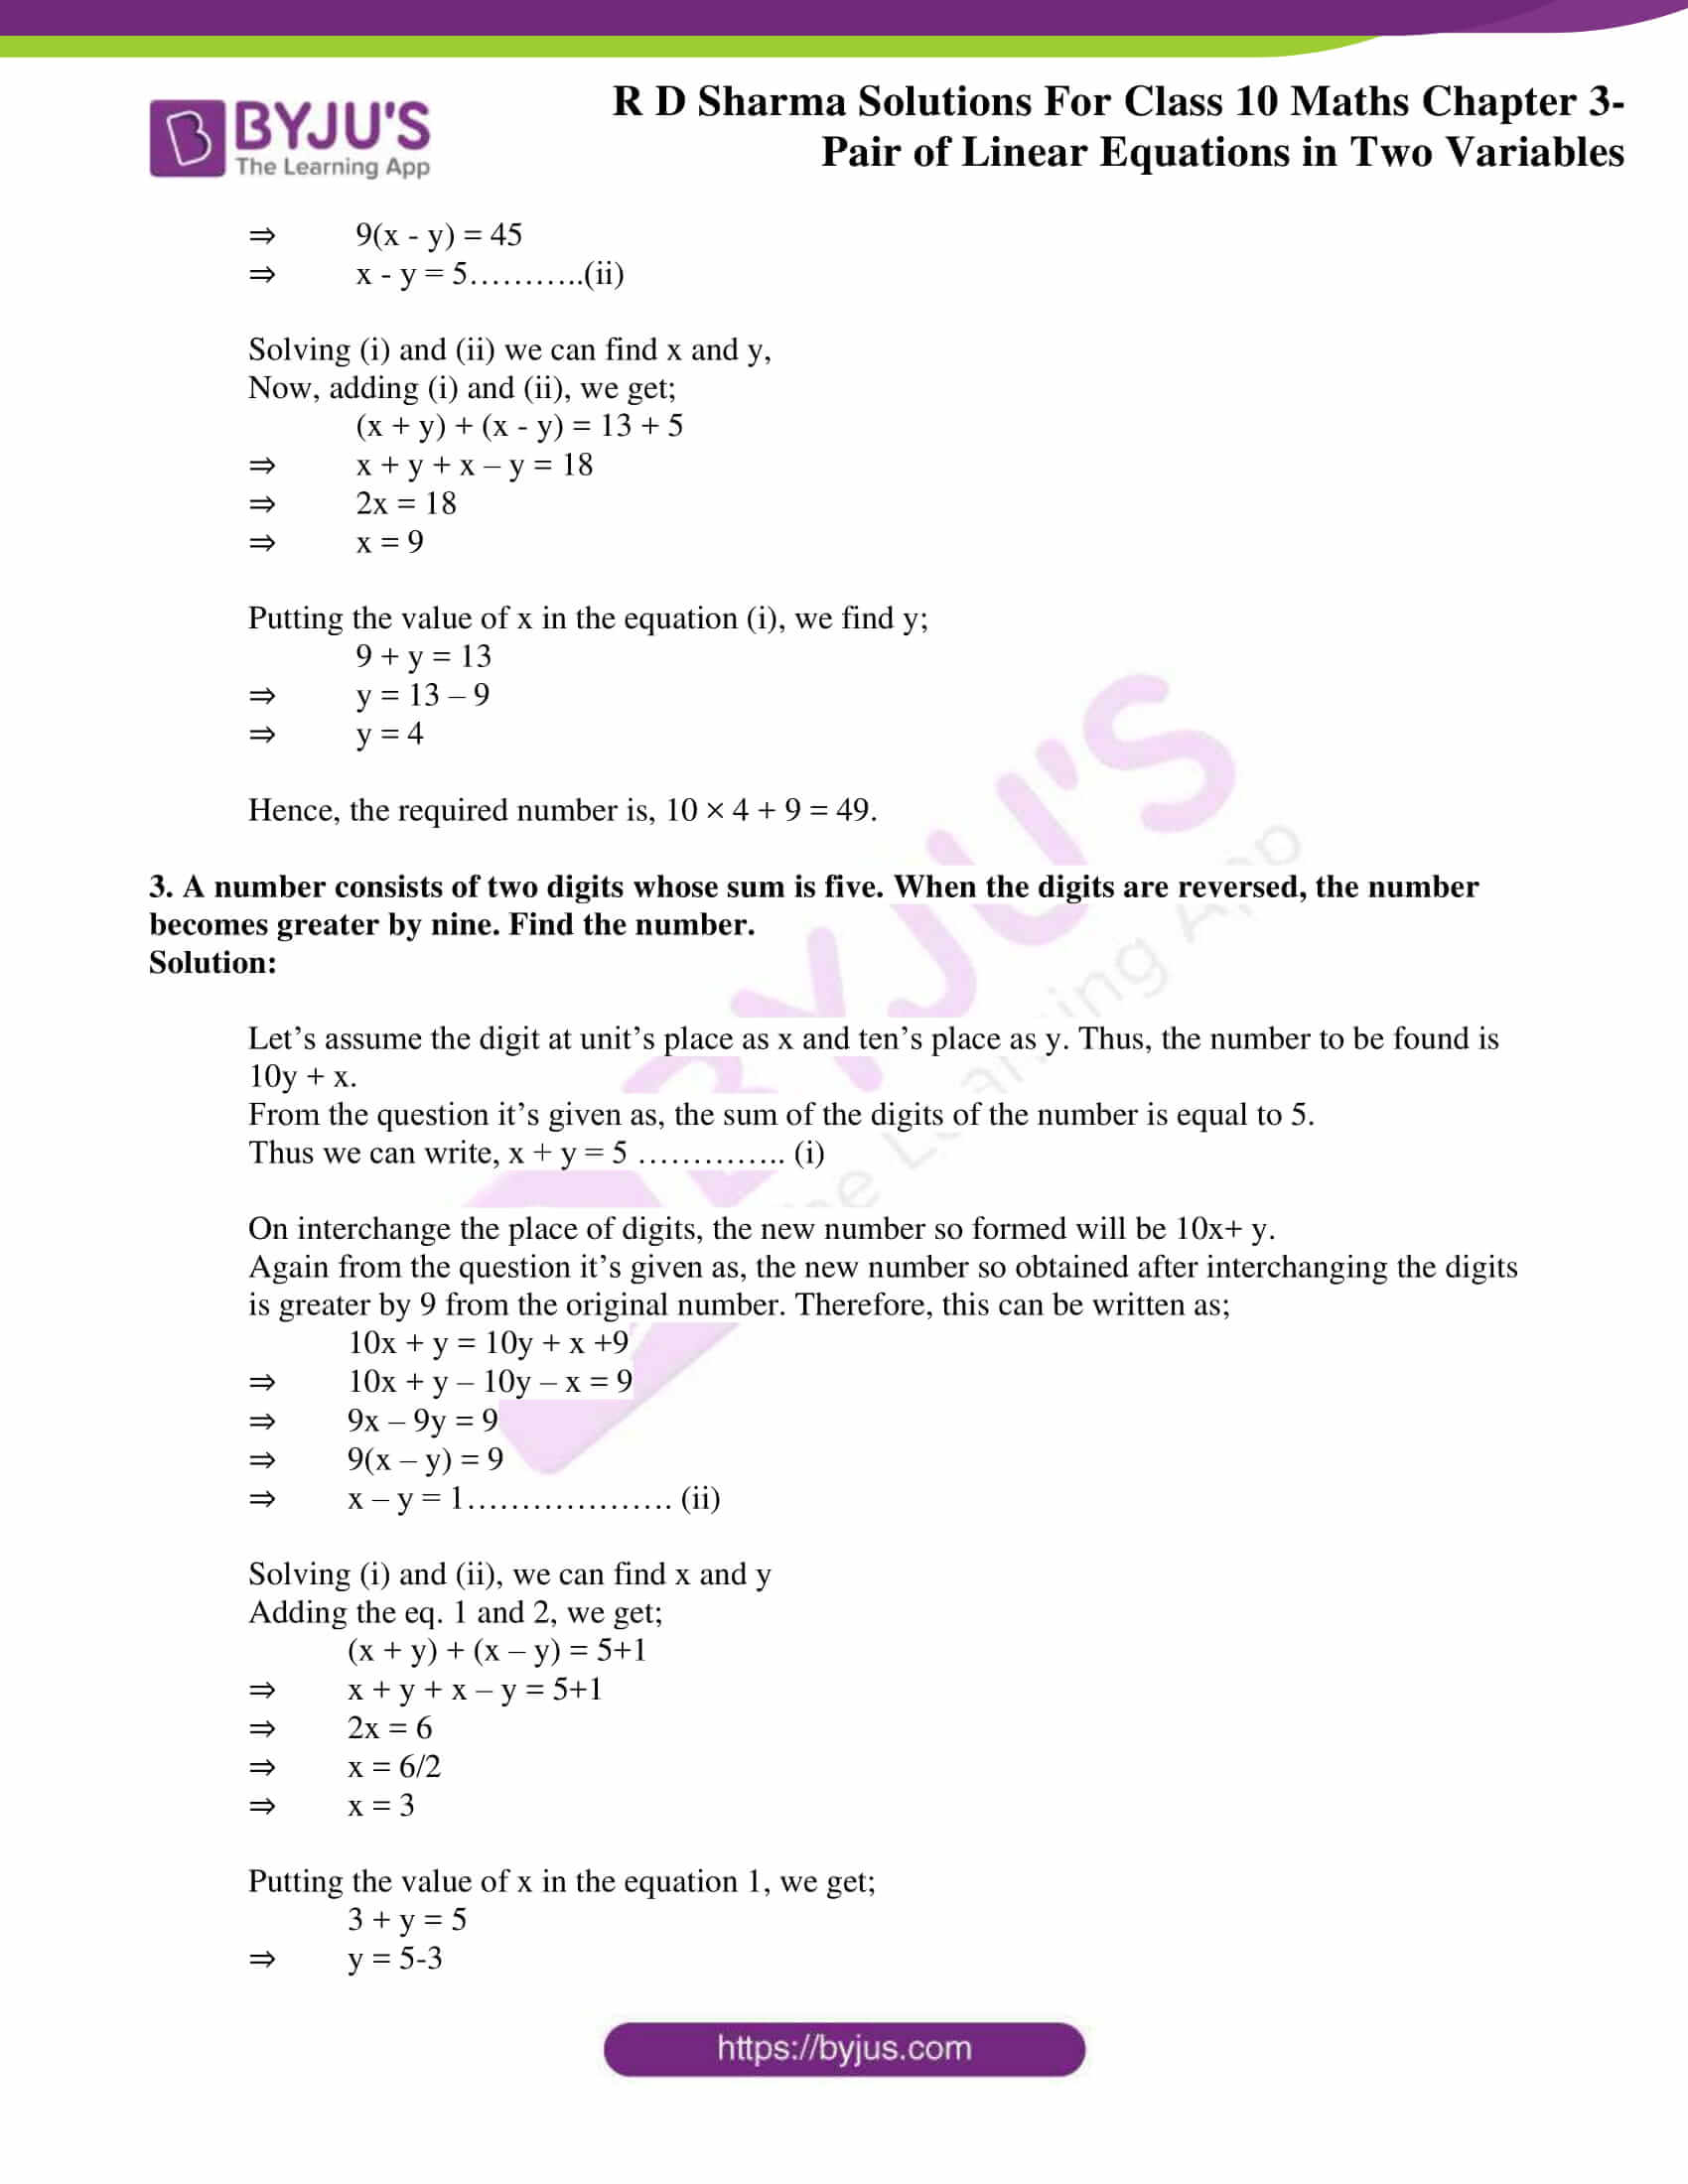 rd sharma solutions for class 10 chapter 3 ex 3.7